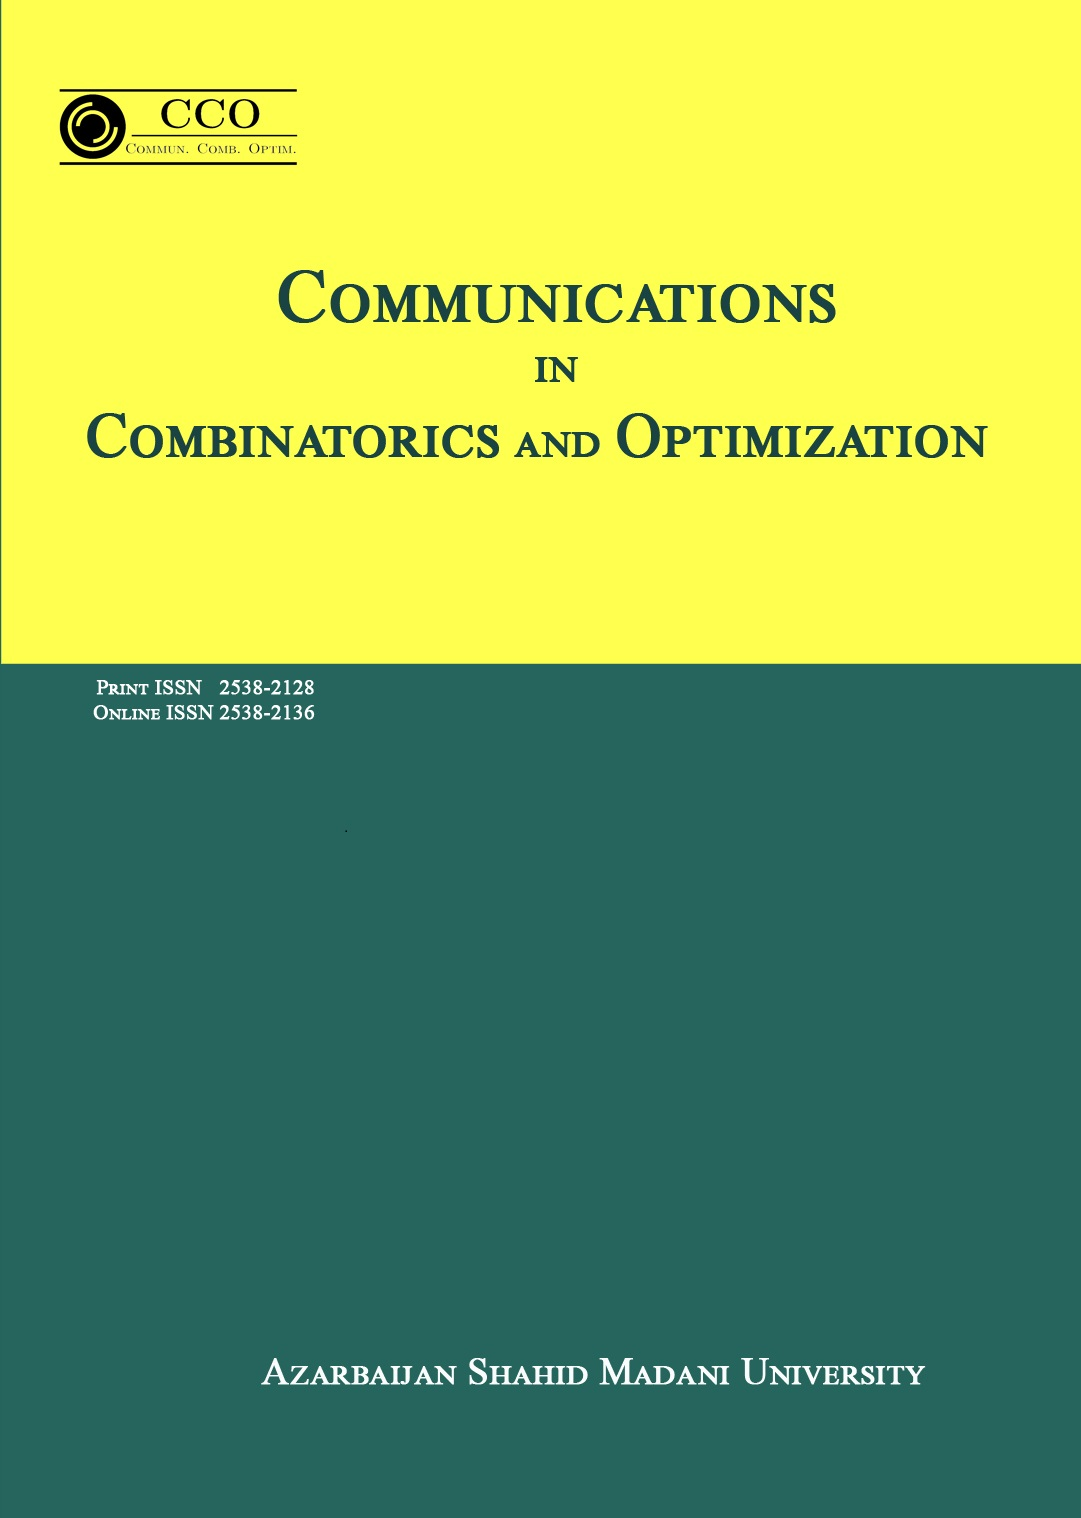 Communications in Combinatorics and Optimization